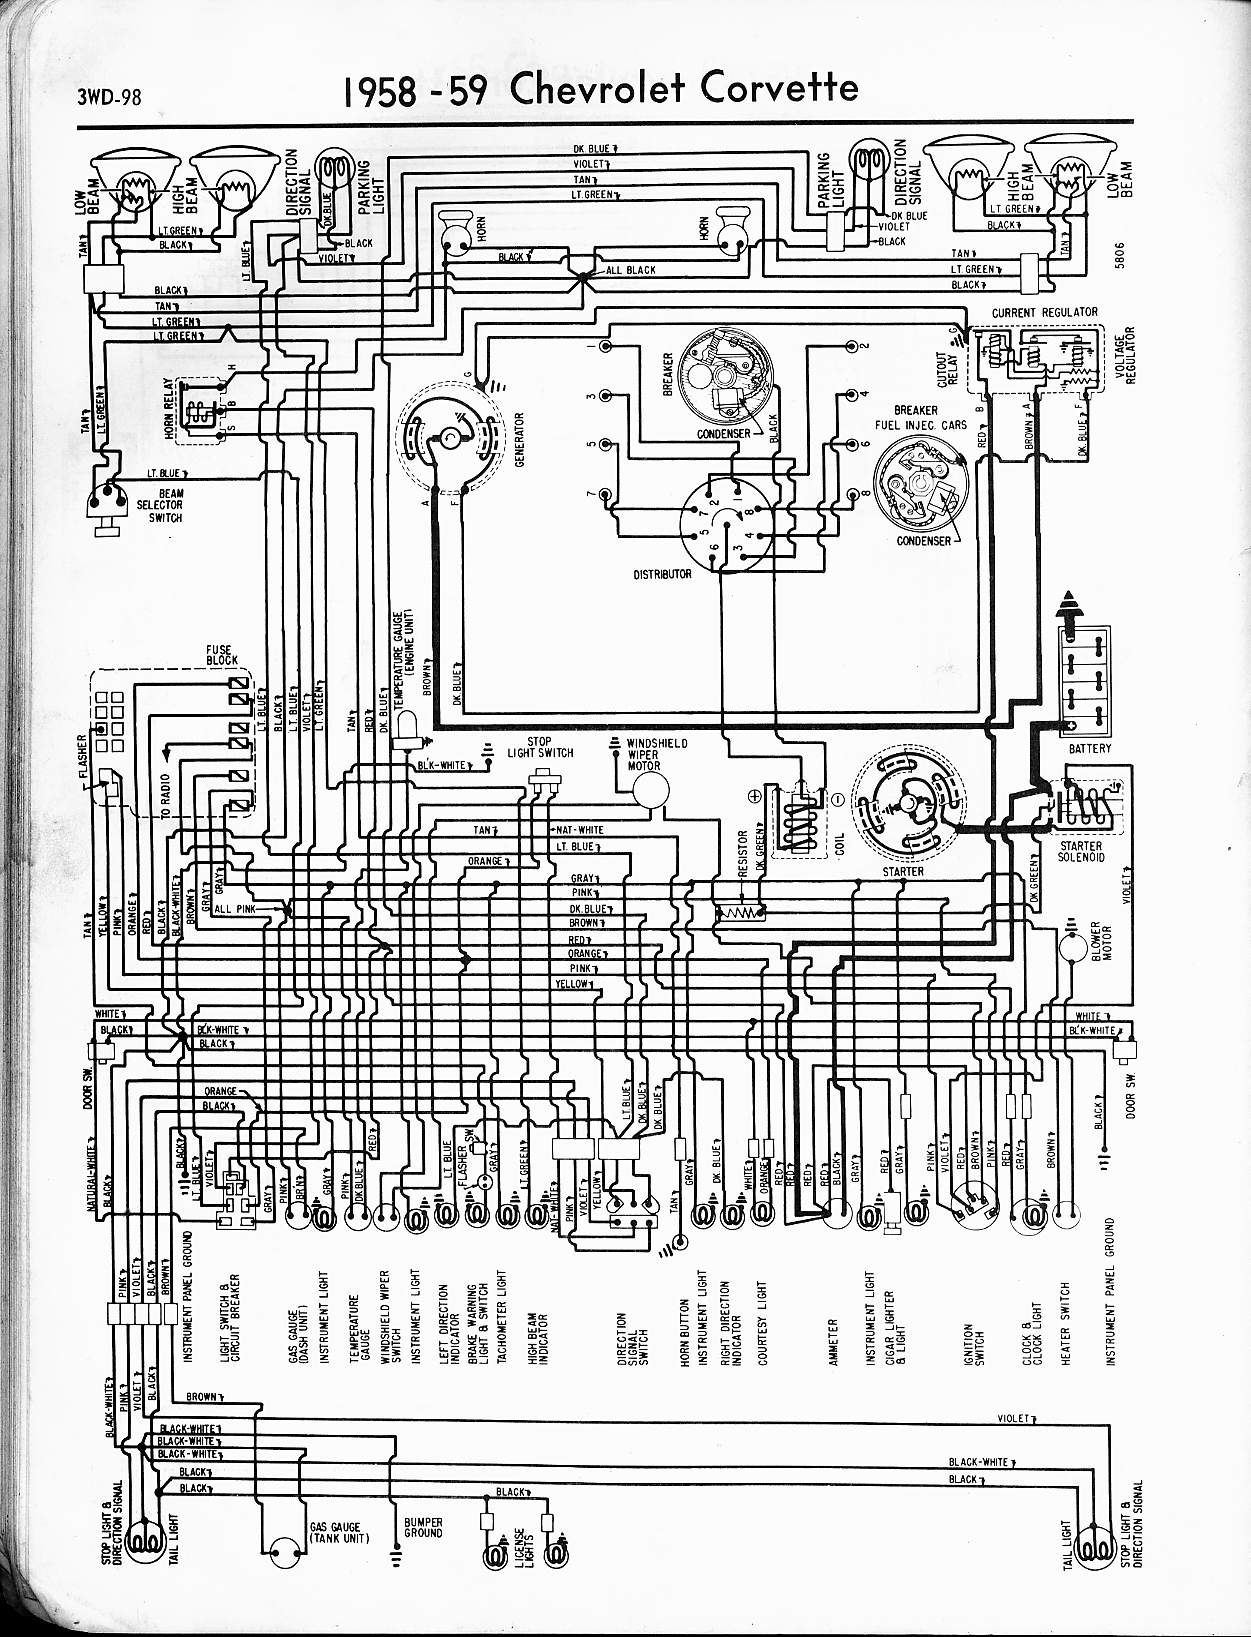 MWireChev58_3WD 098 57 65 chevy wiring diagrams 1965 chevy ignition switch wiring diagram at edmiracle.co